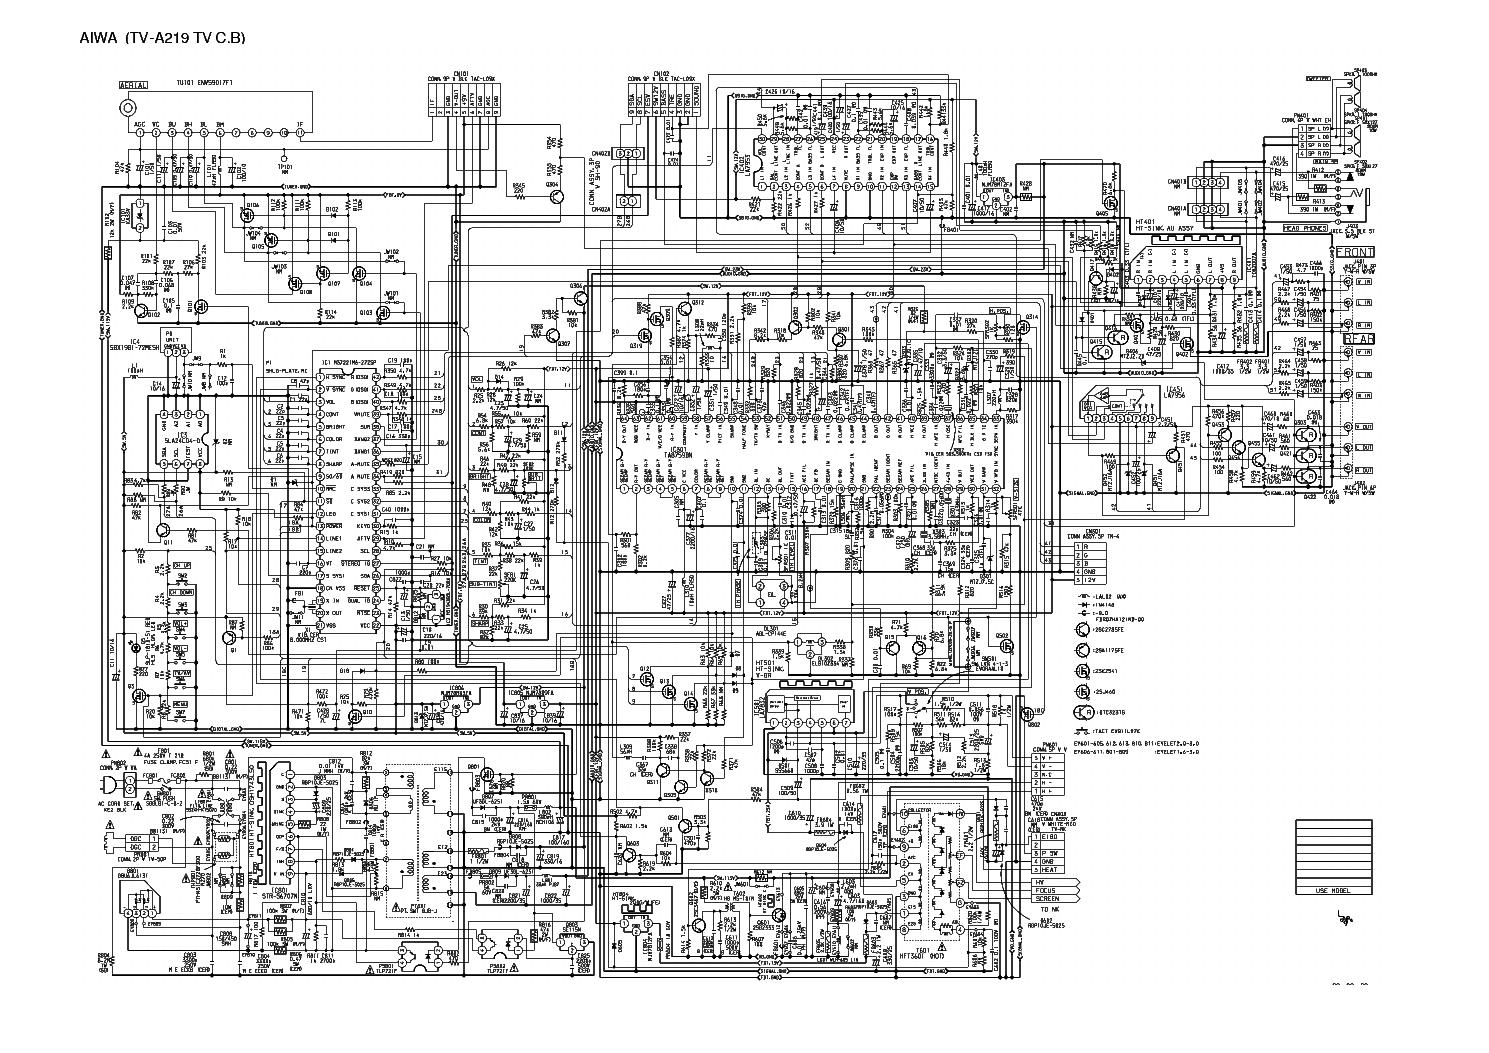 hight resolution of free aiwa tv circuit diagram wiring diagram previewaiwa tv a219 service manual download schematics